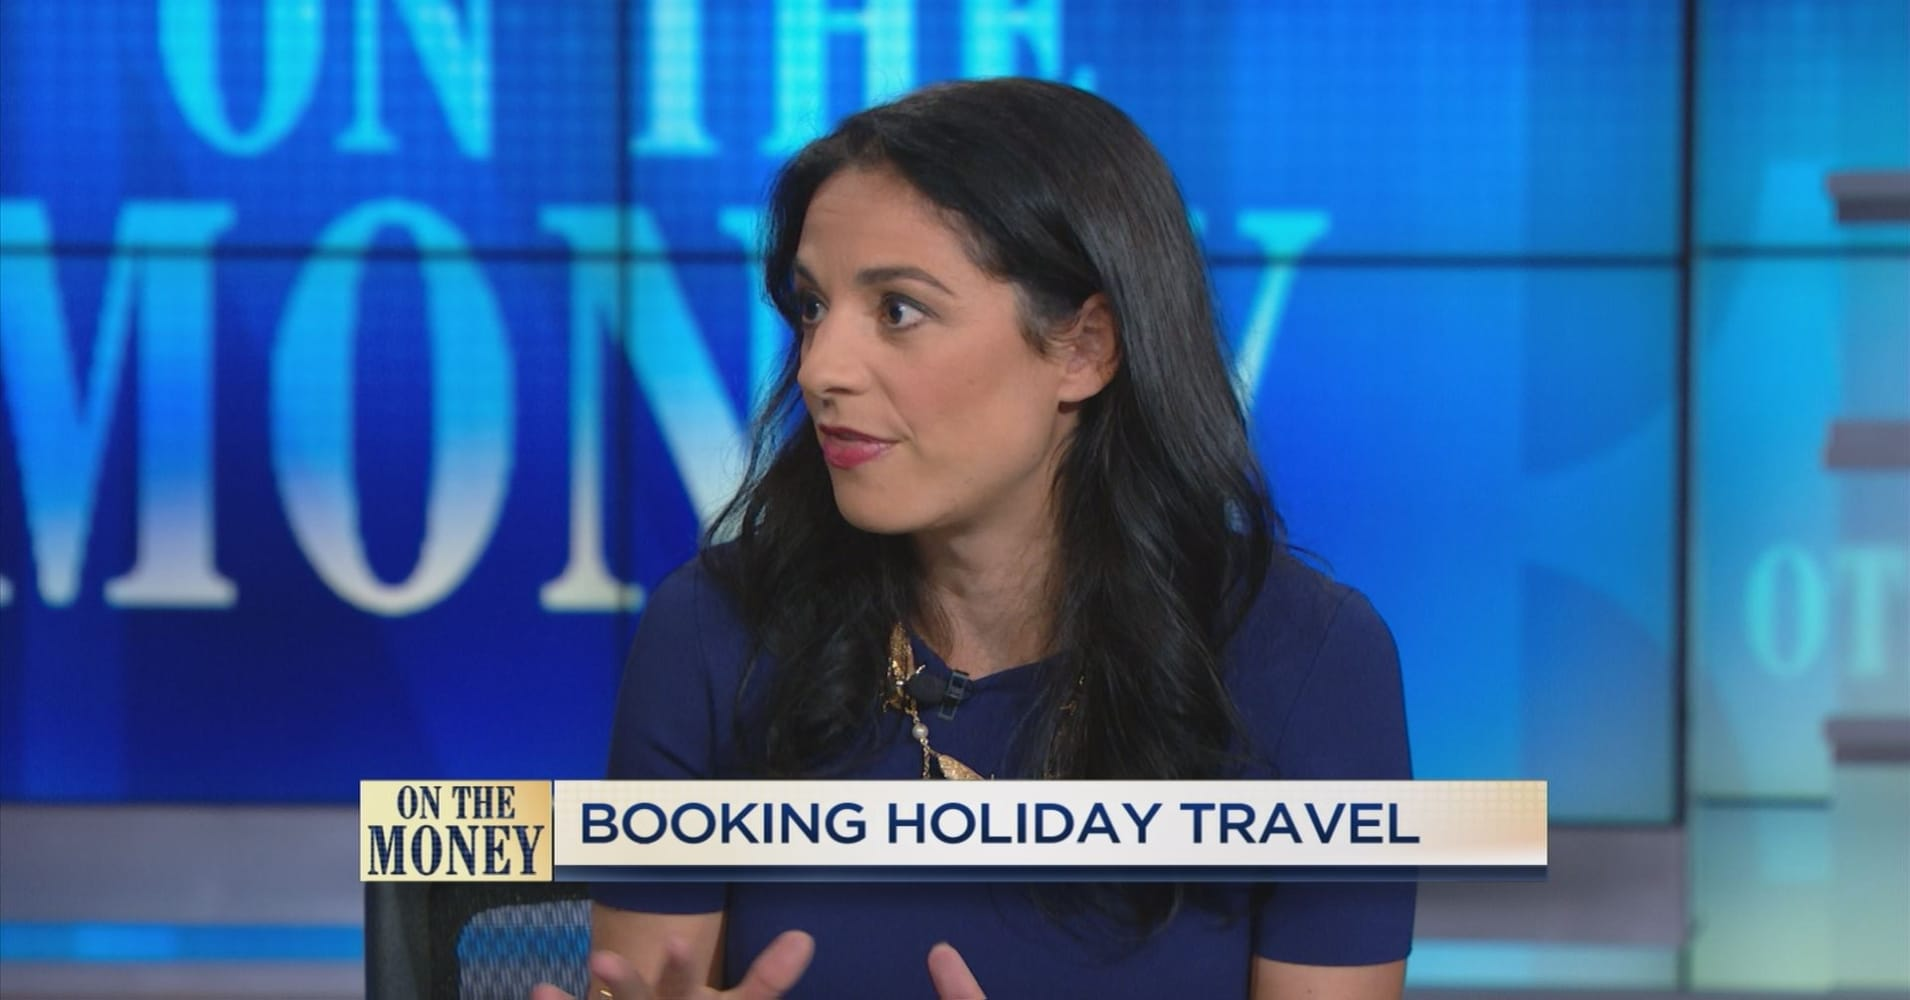 It's the best time to book holiday travel